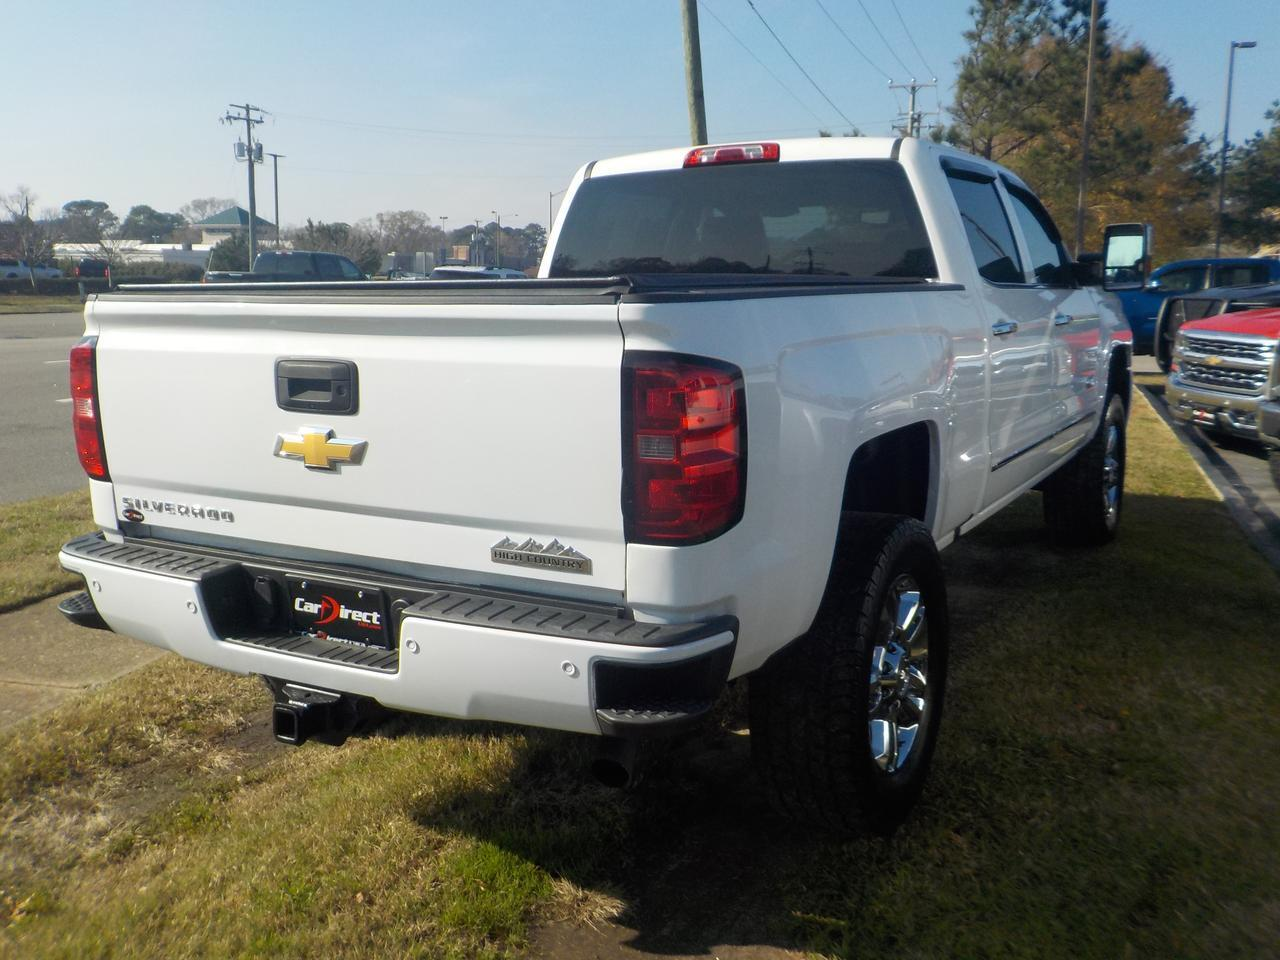 2016 CHEVROLET SILVERADO 2500 HIGH COUNTRY CREW CAB 4X4, ONE OWNER LEATHER, BOSE SOUND SYSTEM, REMOTE START, BACKUP CAMERA! Virginia Beach VA